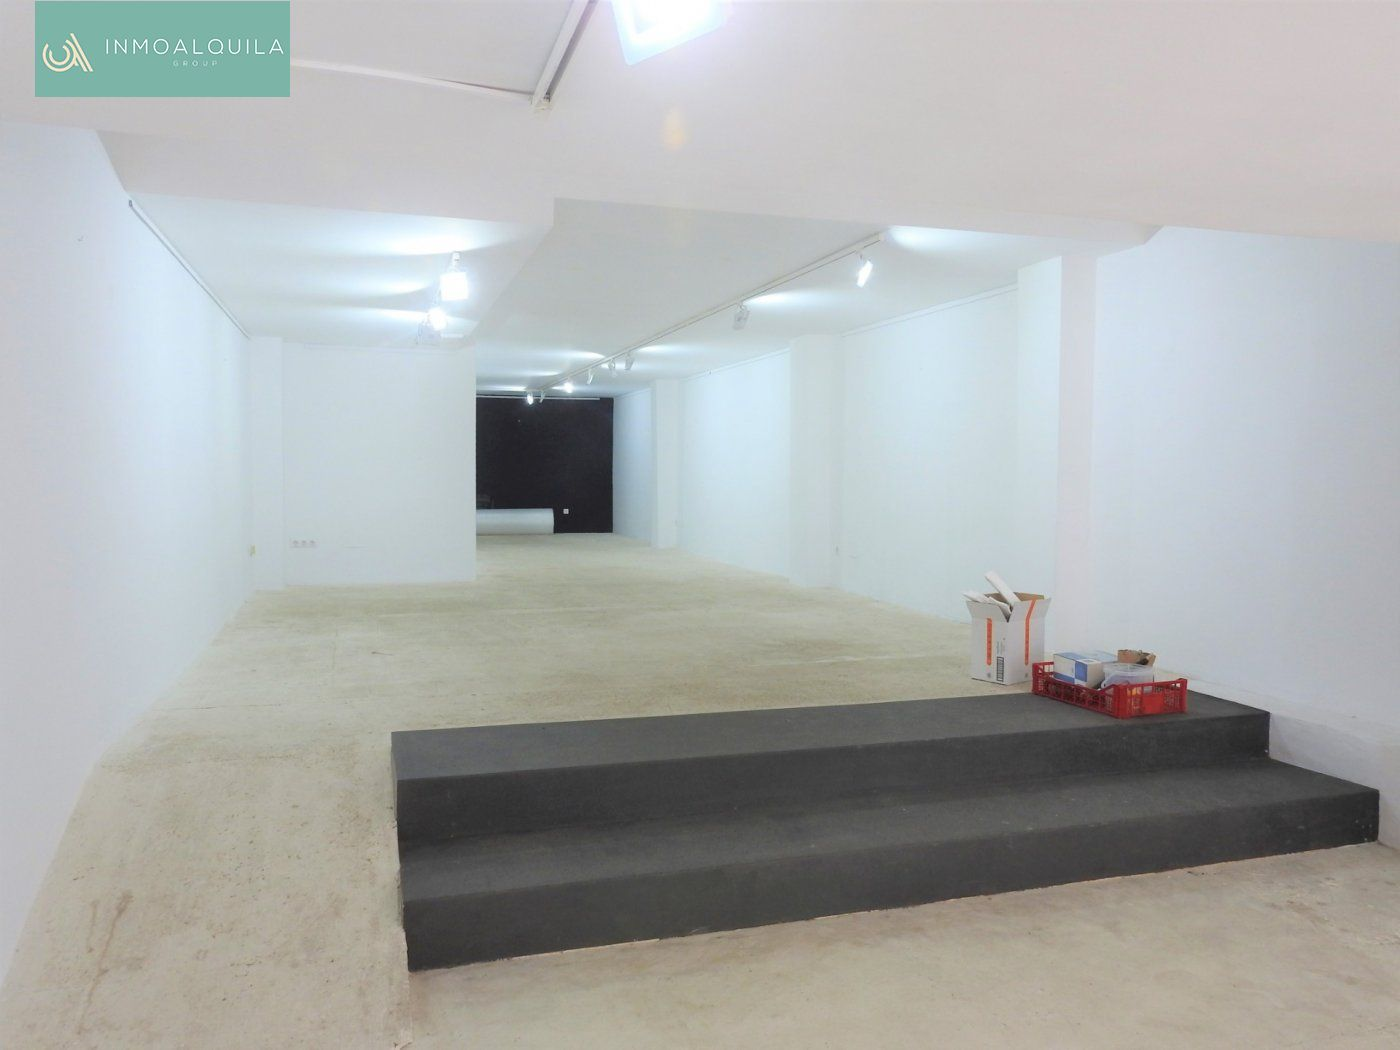 Alquiler Local Comercial  Can picafort ,can picafort. Local en can picafort. 185m2. 600€/mes